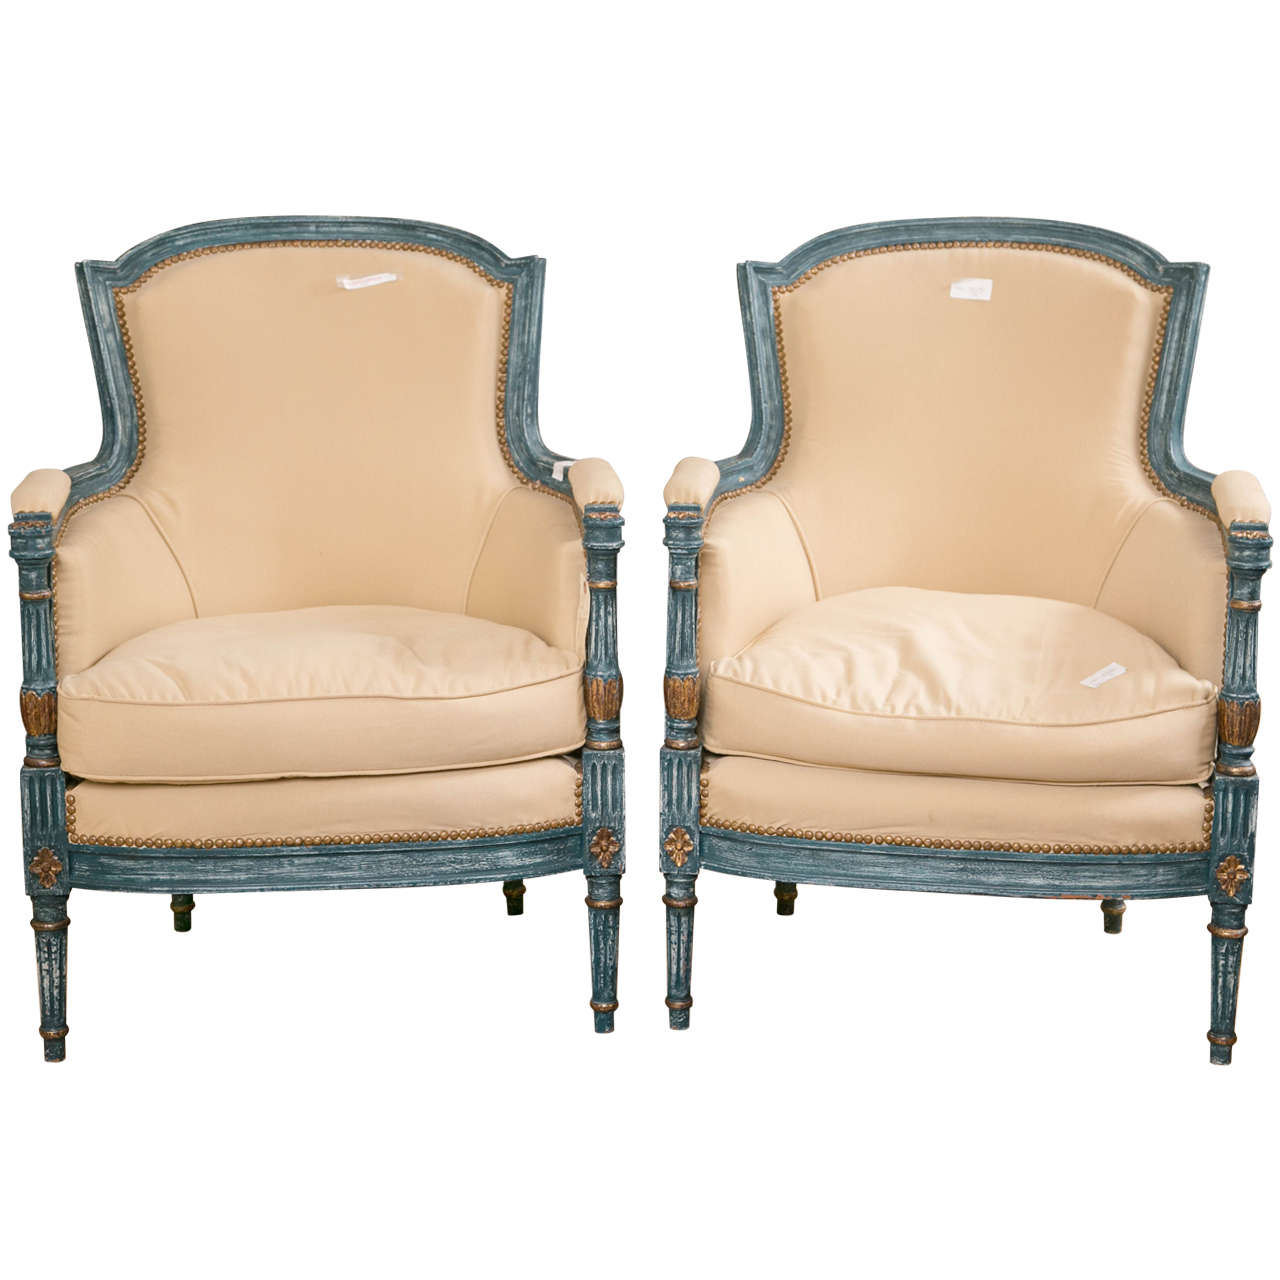 Pair Of Louis XVI Style Chairs By Maison Jansen For Sale At 1stdibs